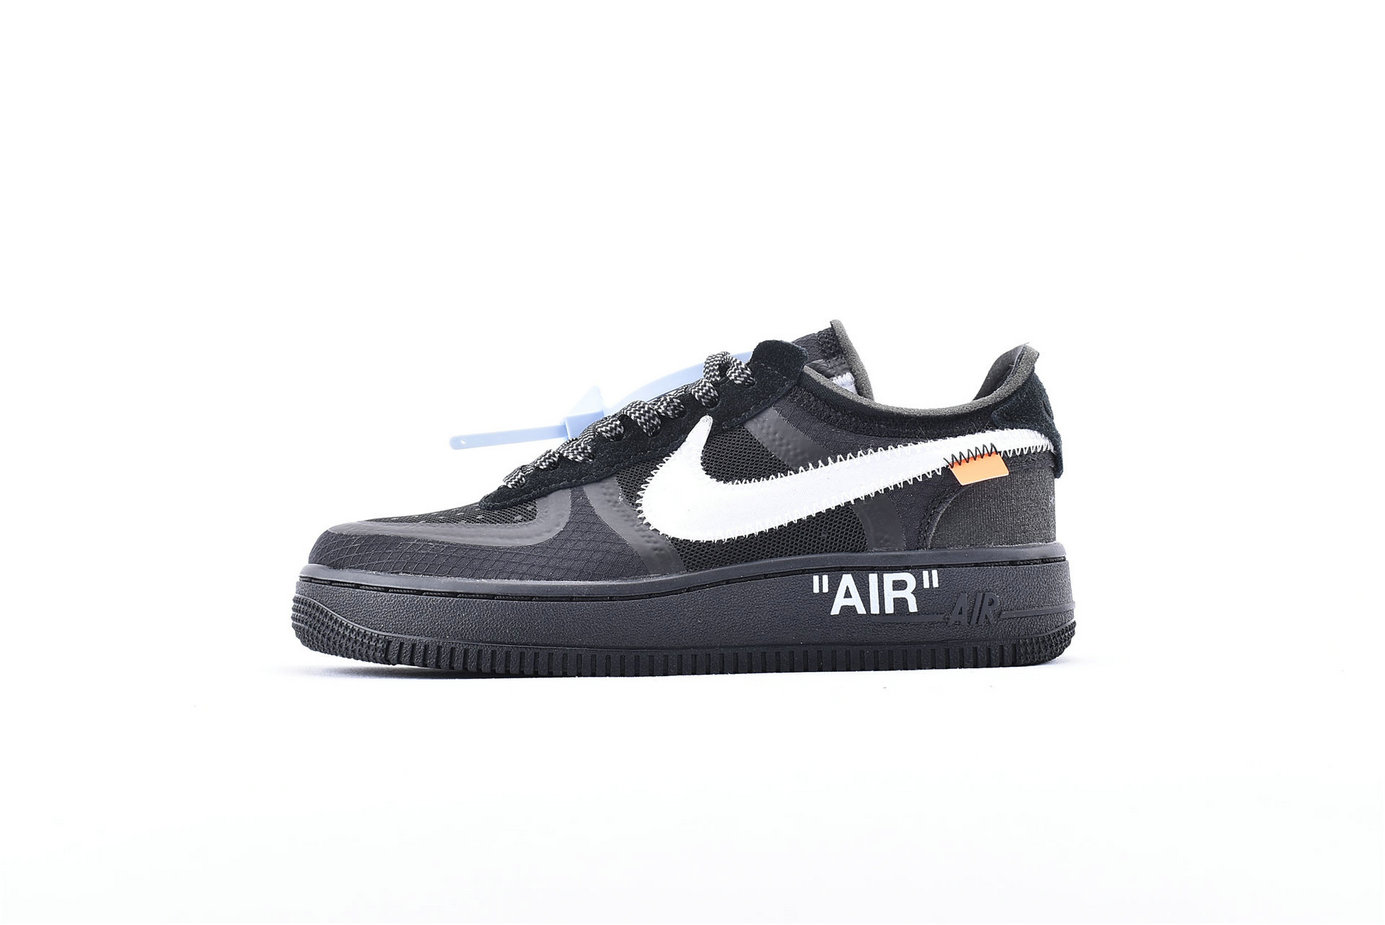 Where To Buy Cheap Off-White x Nike Air Force 1 Low Black-White-Cone-Black AO4606-001